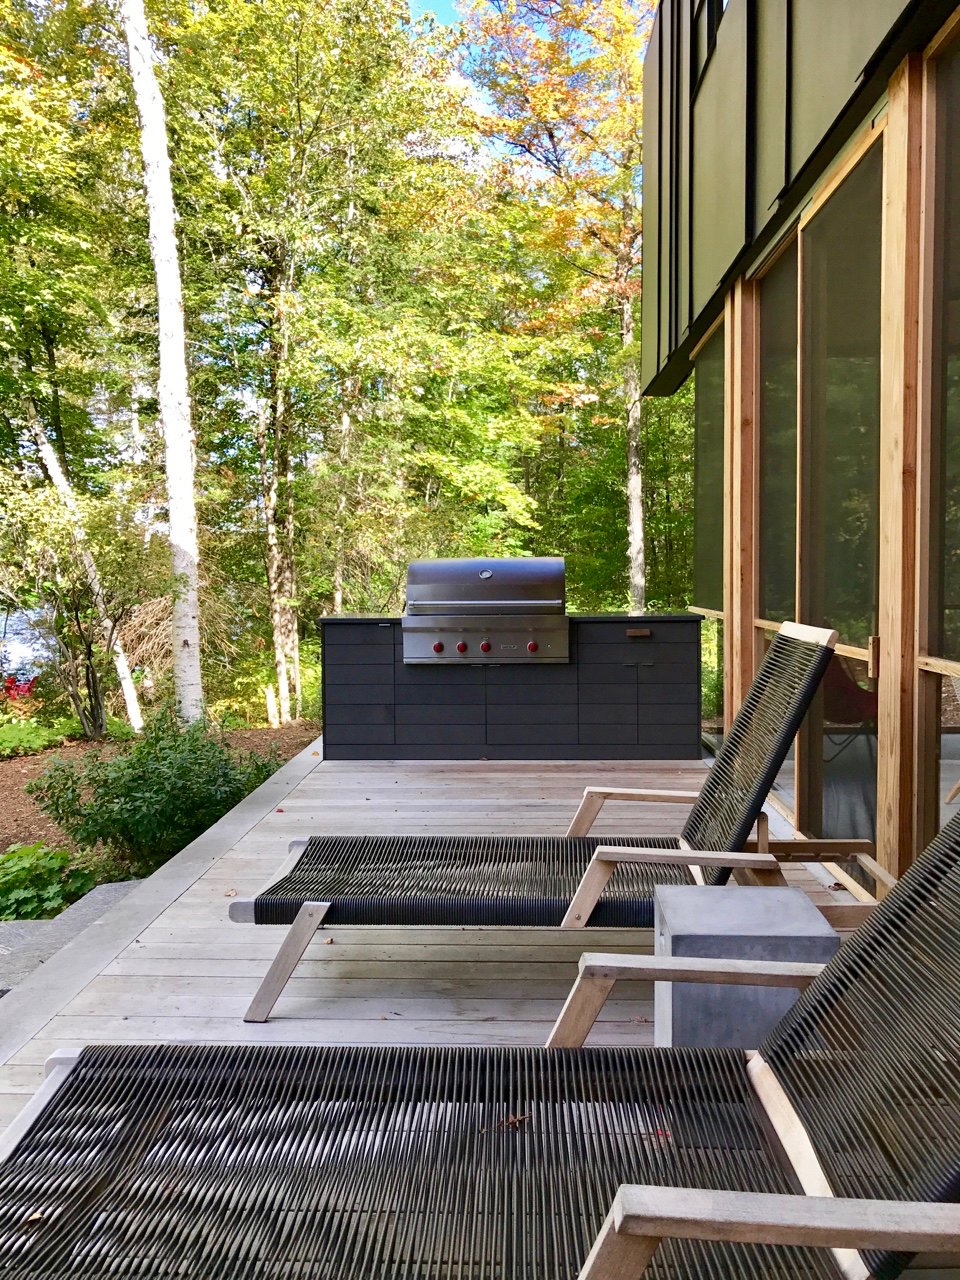 With top quality teak reclining loungers situated on our front deck, there's nowhere better to wait out the warm-up of a barbecue.